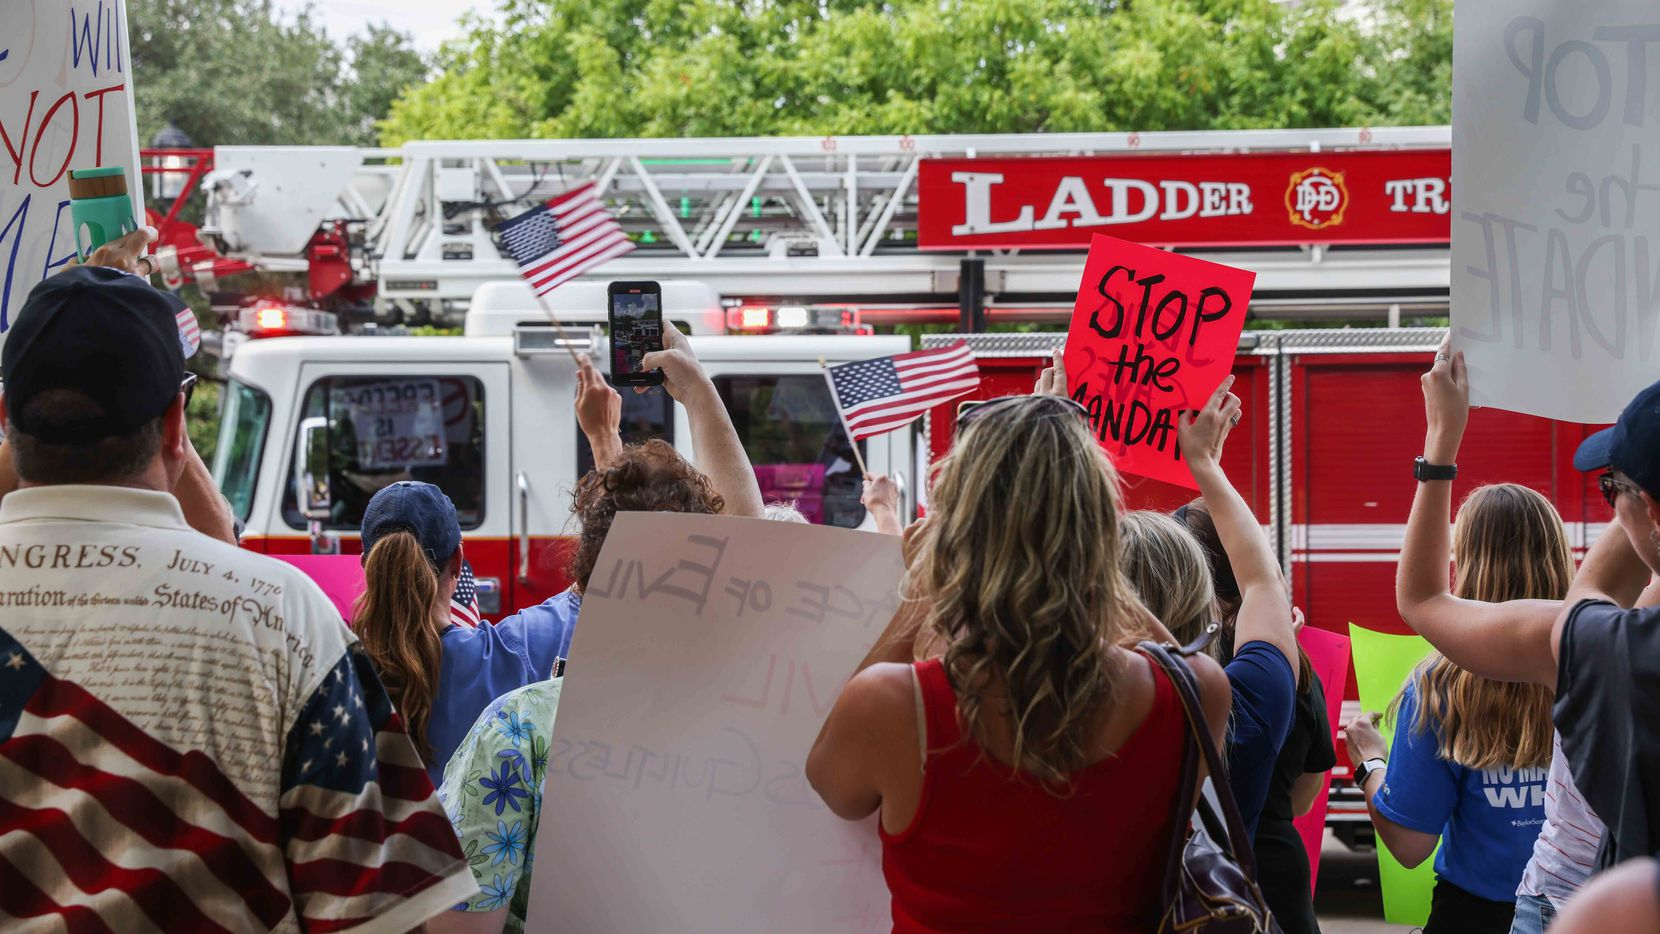 Firefighters in a Dallas fire truck drive through the street as they honk their horn, drawing cheers from the crowd while protesting on COVID-19 vaccine mandates at Baylor University Medical Center on Saturday, August 7, 2021. (Lola Gomez/The Dallas Morning News)